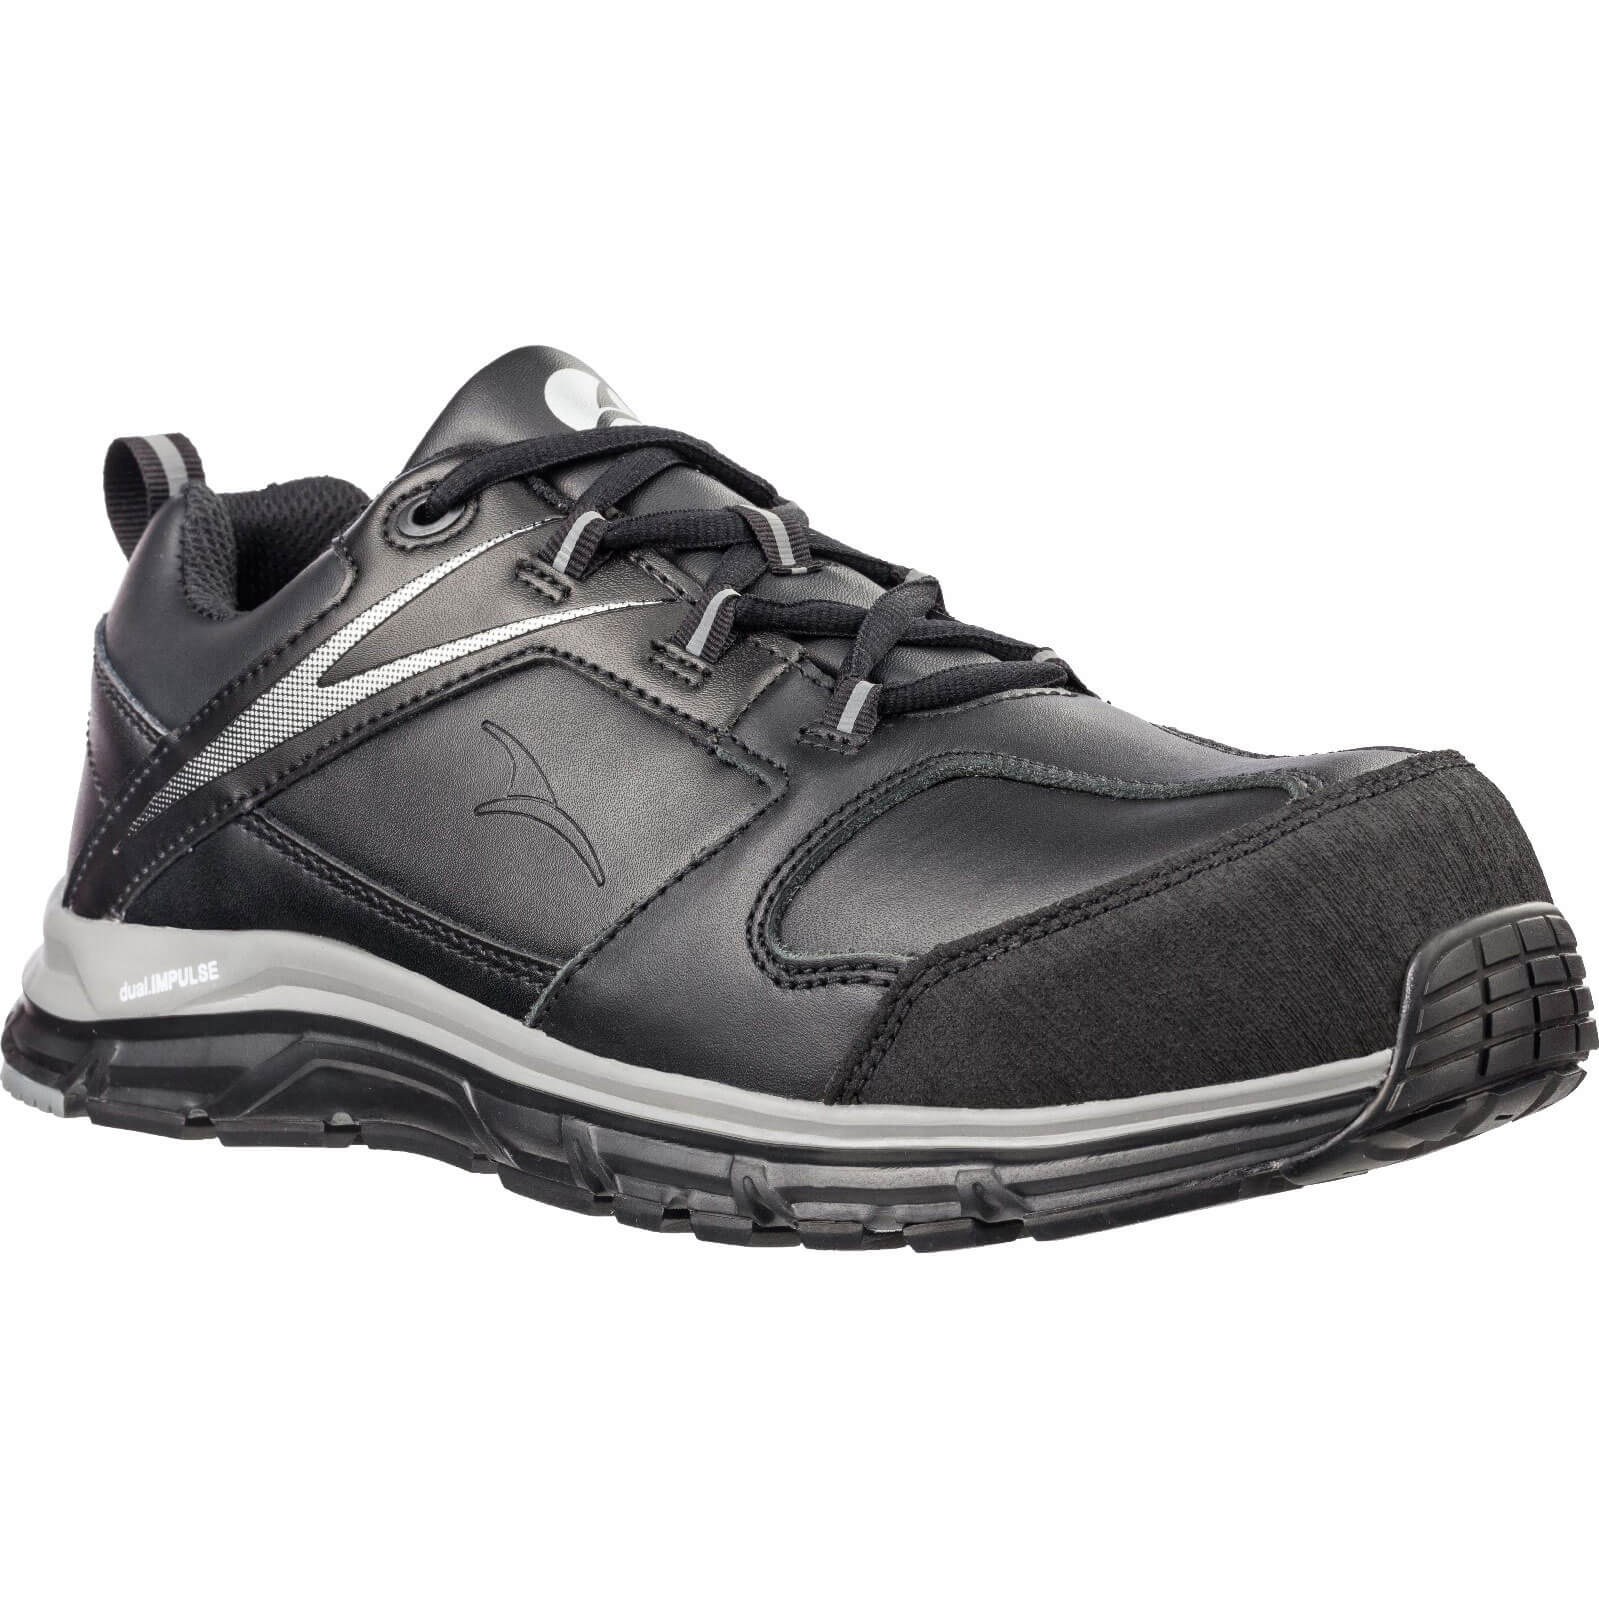 Image of Albatros Vigor Impulse Low Safety Trainer Black Size 11